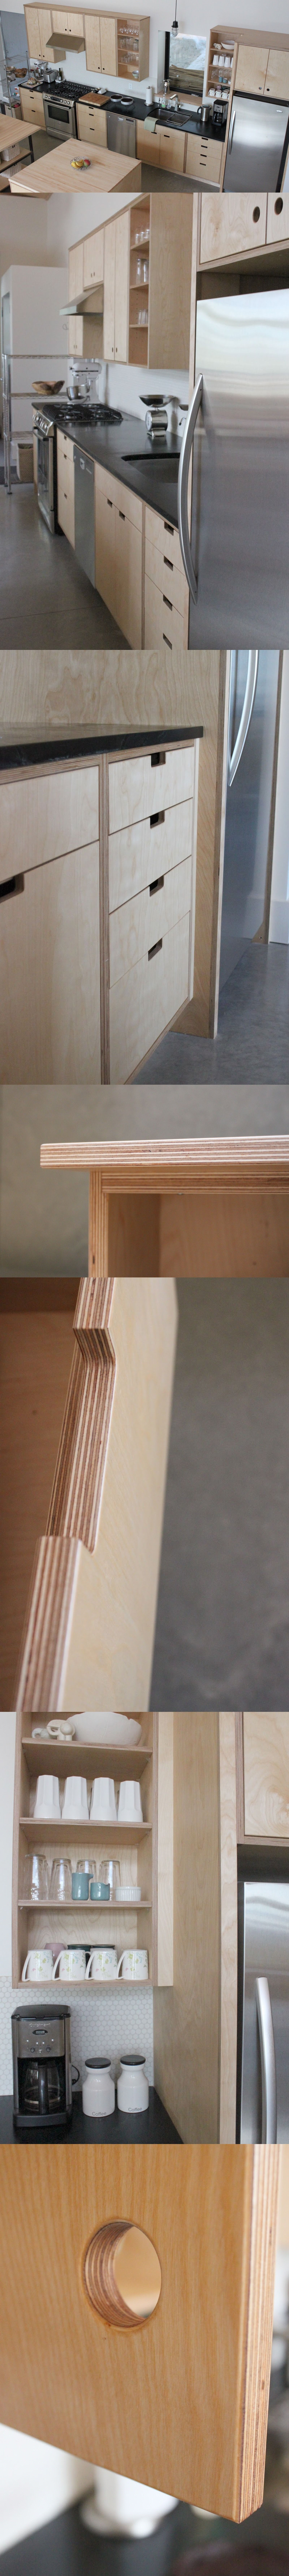 interior design ndsu - 1000+ images about rchitecture on Pinterest Plywood, Plywood ...